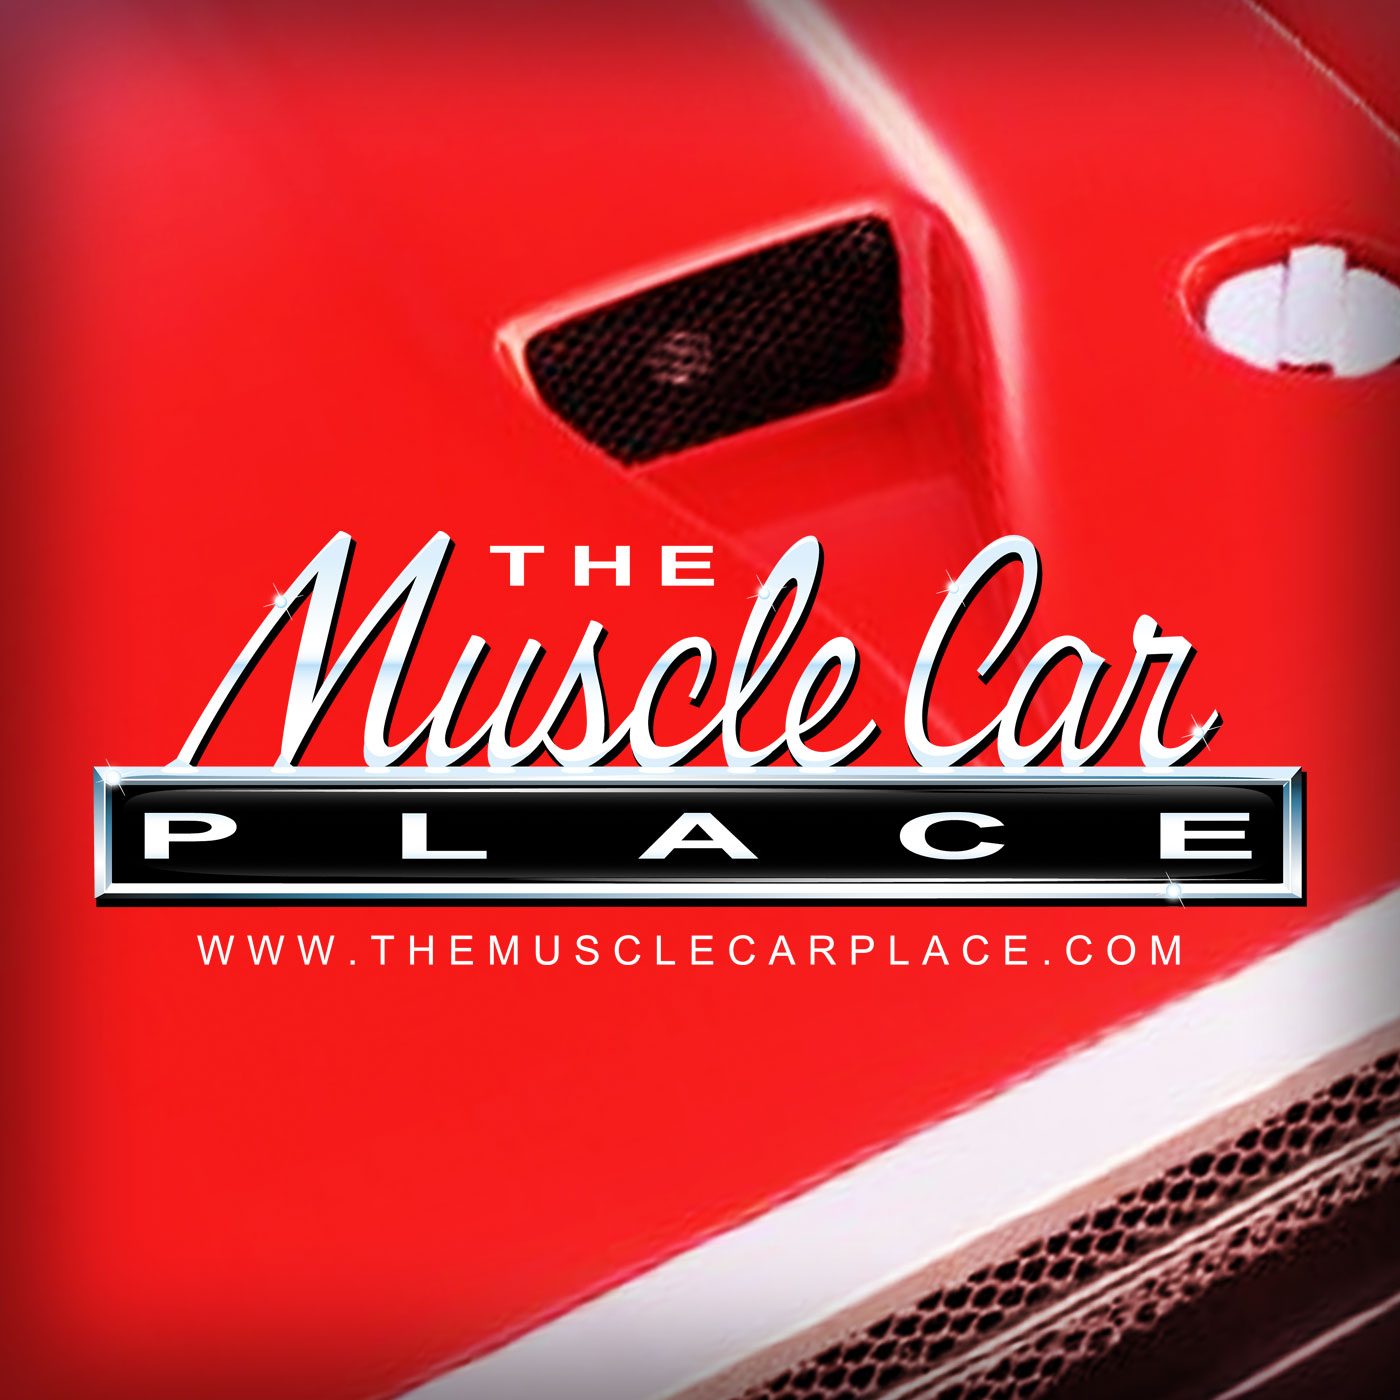 The Muscle Car Place